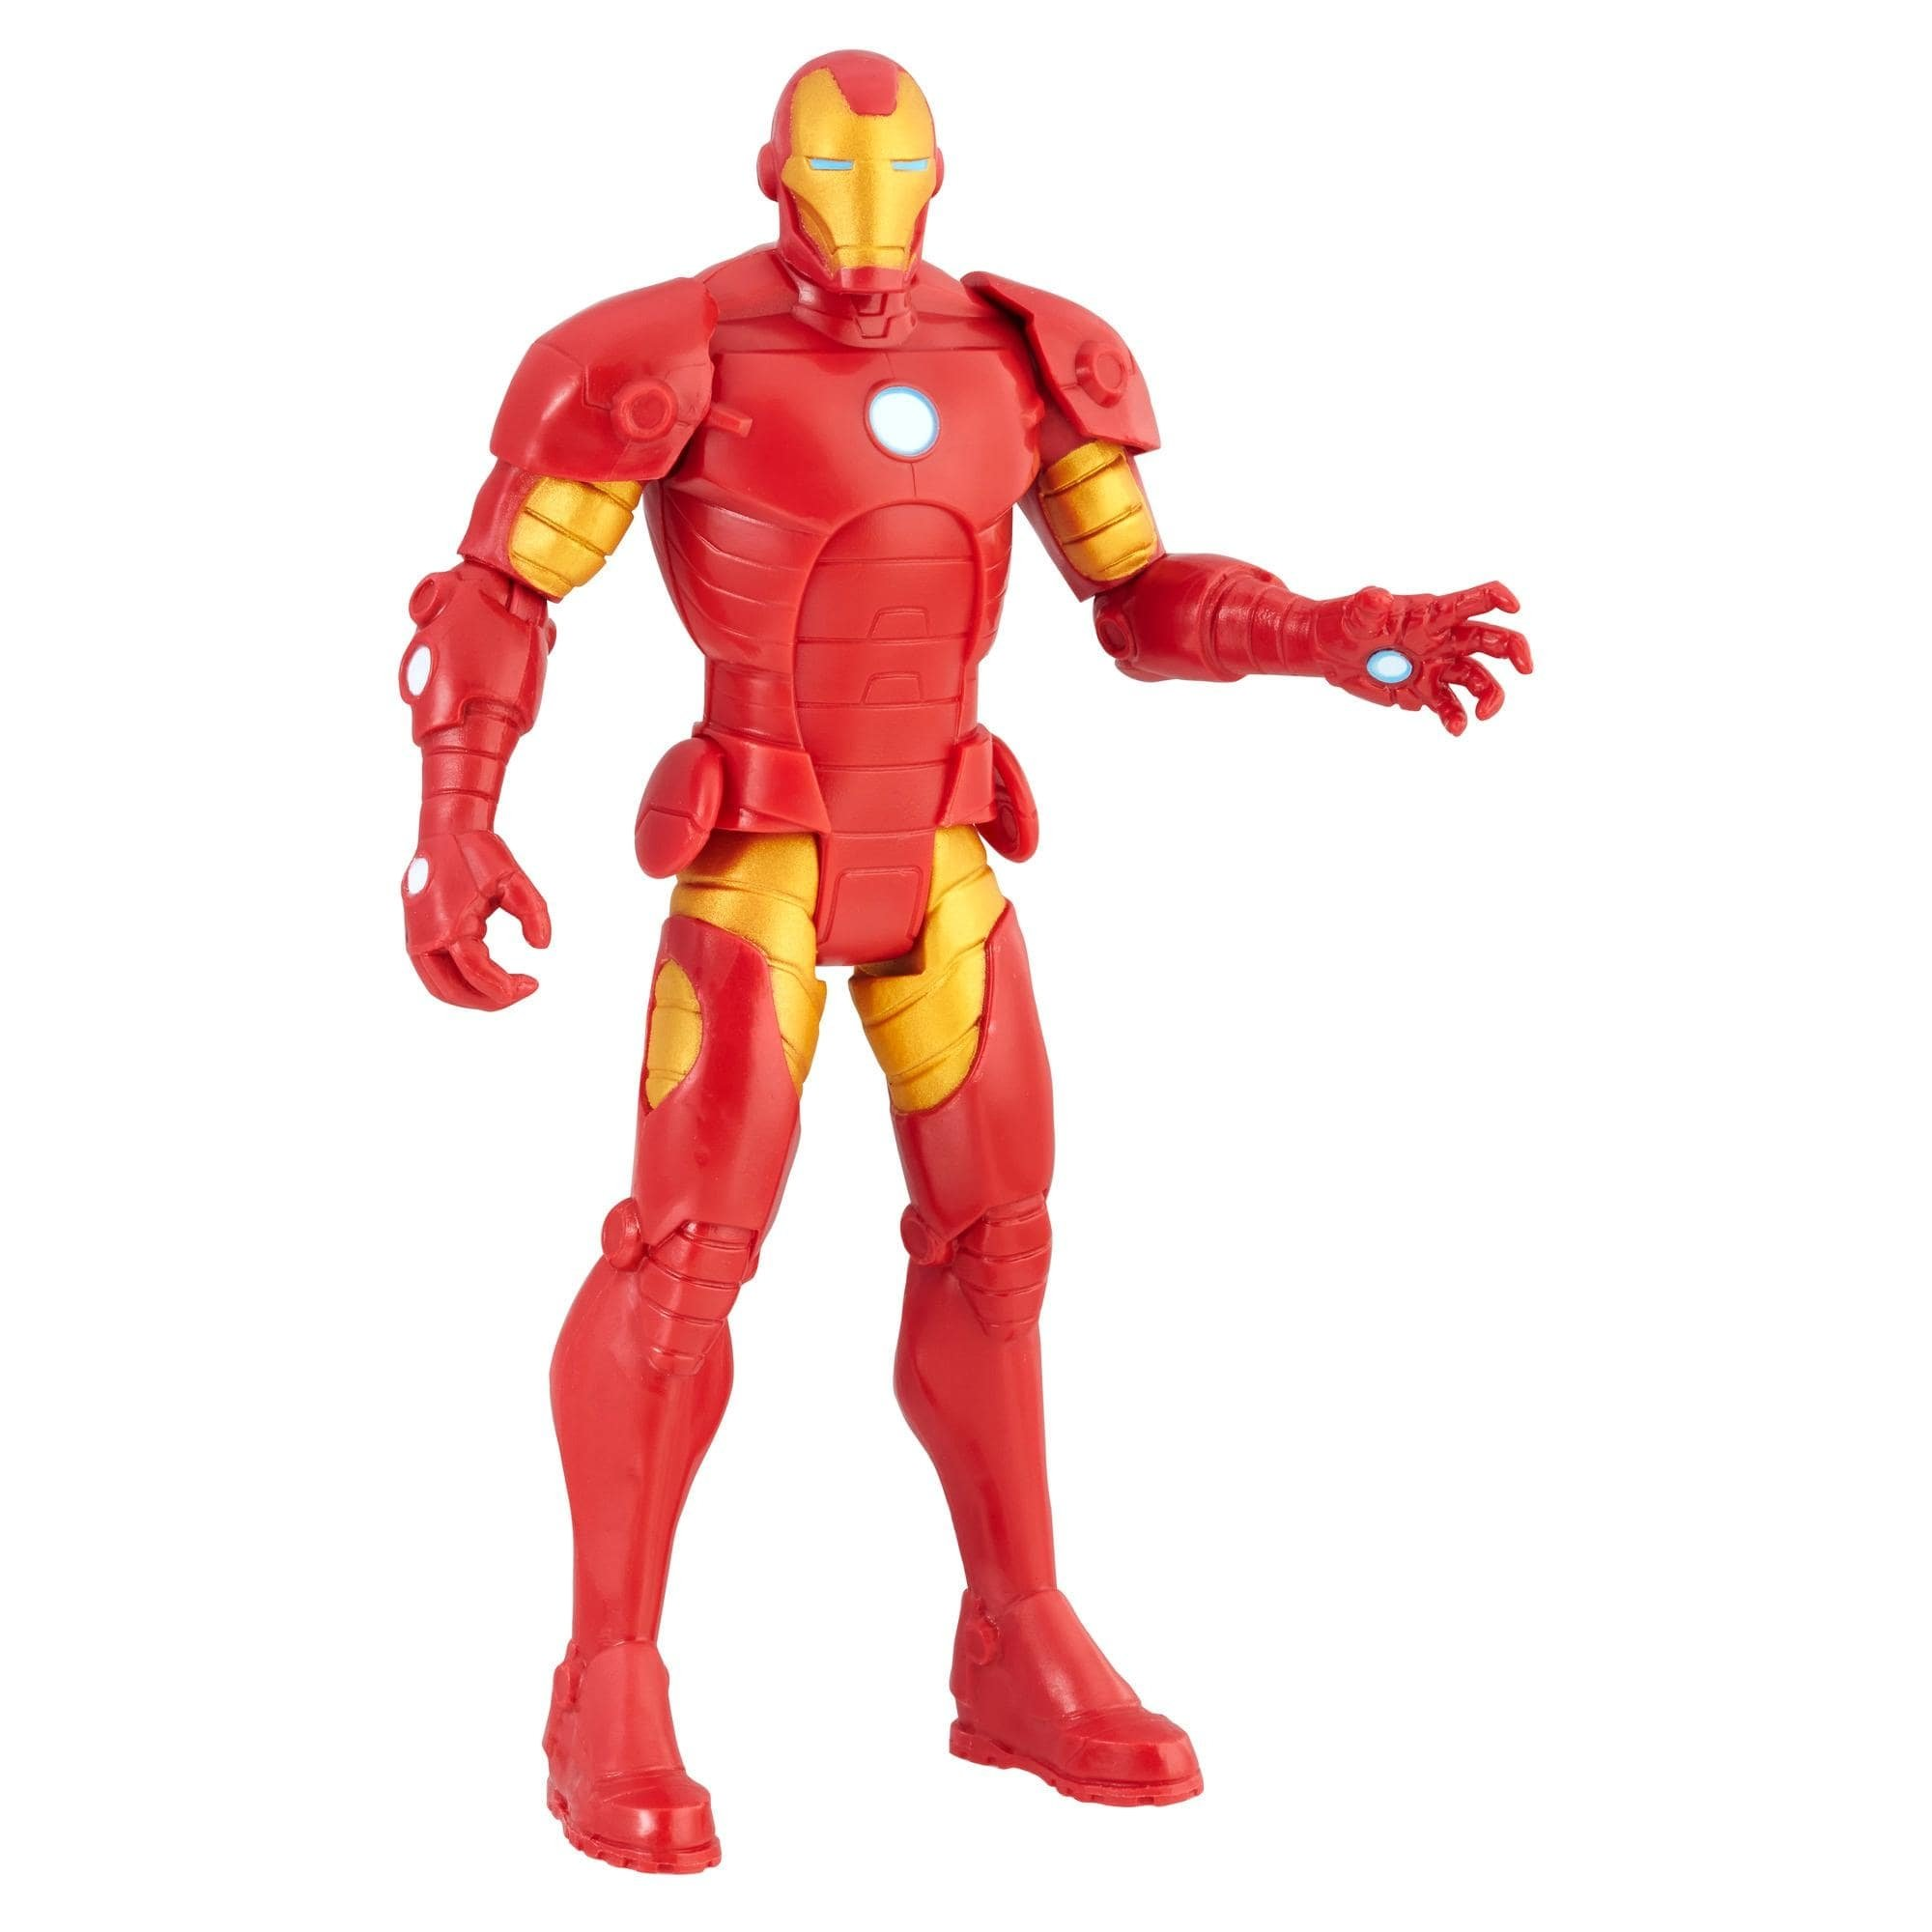 figurina marvel avengers - iron man, 15 cm